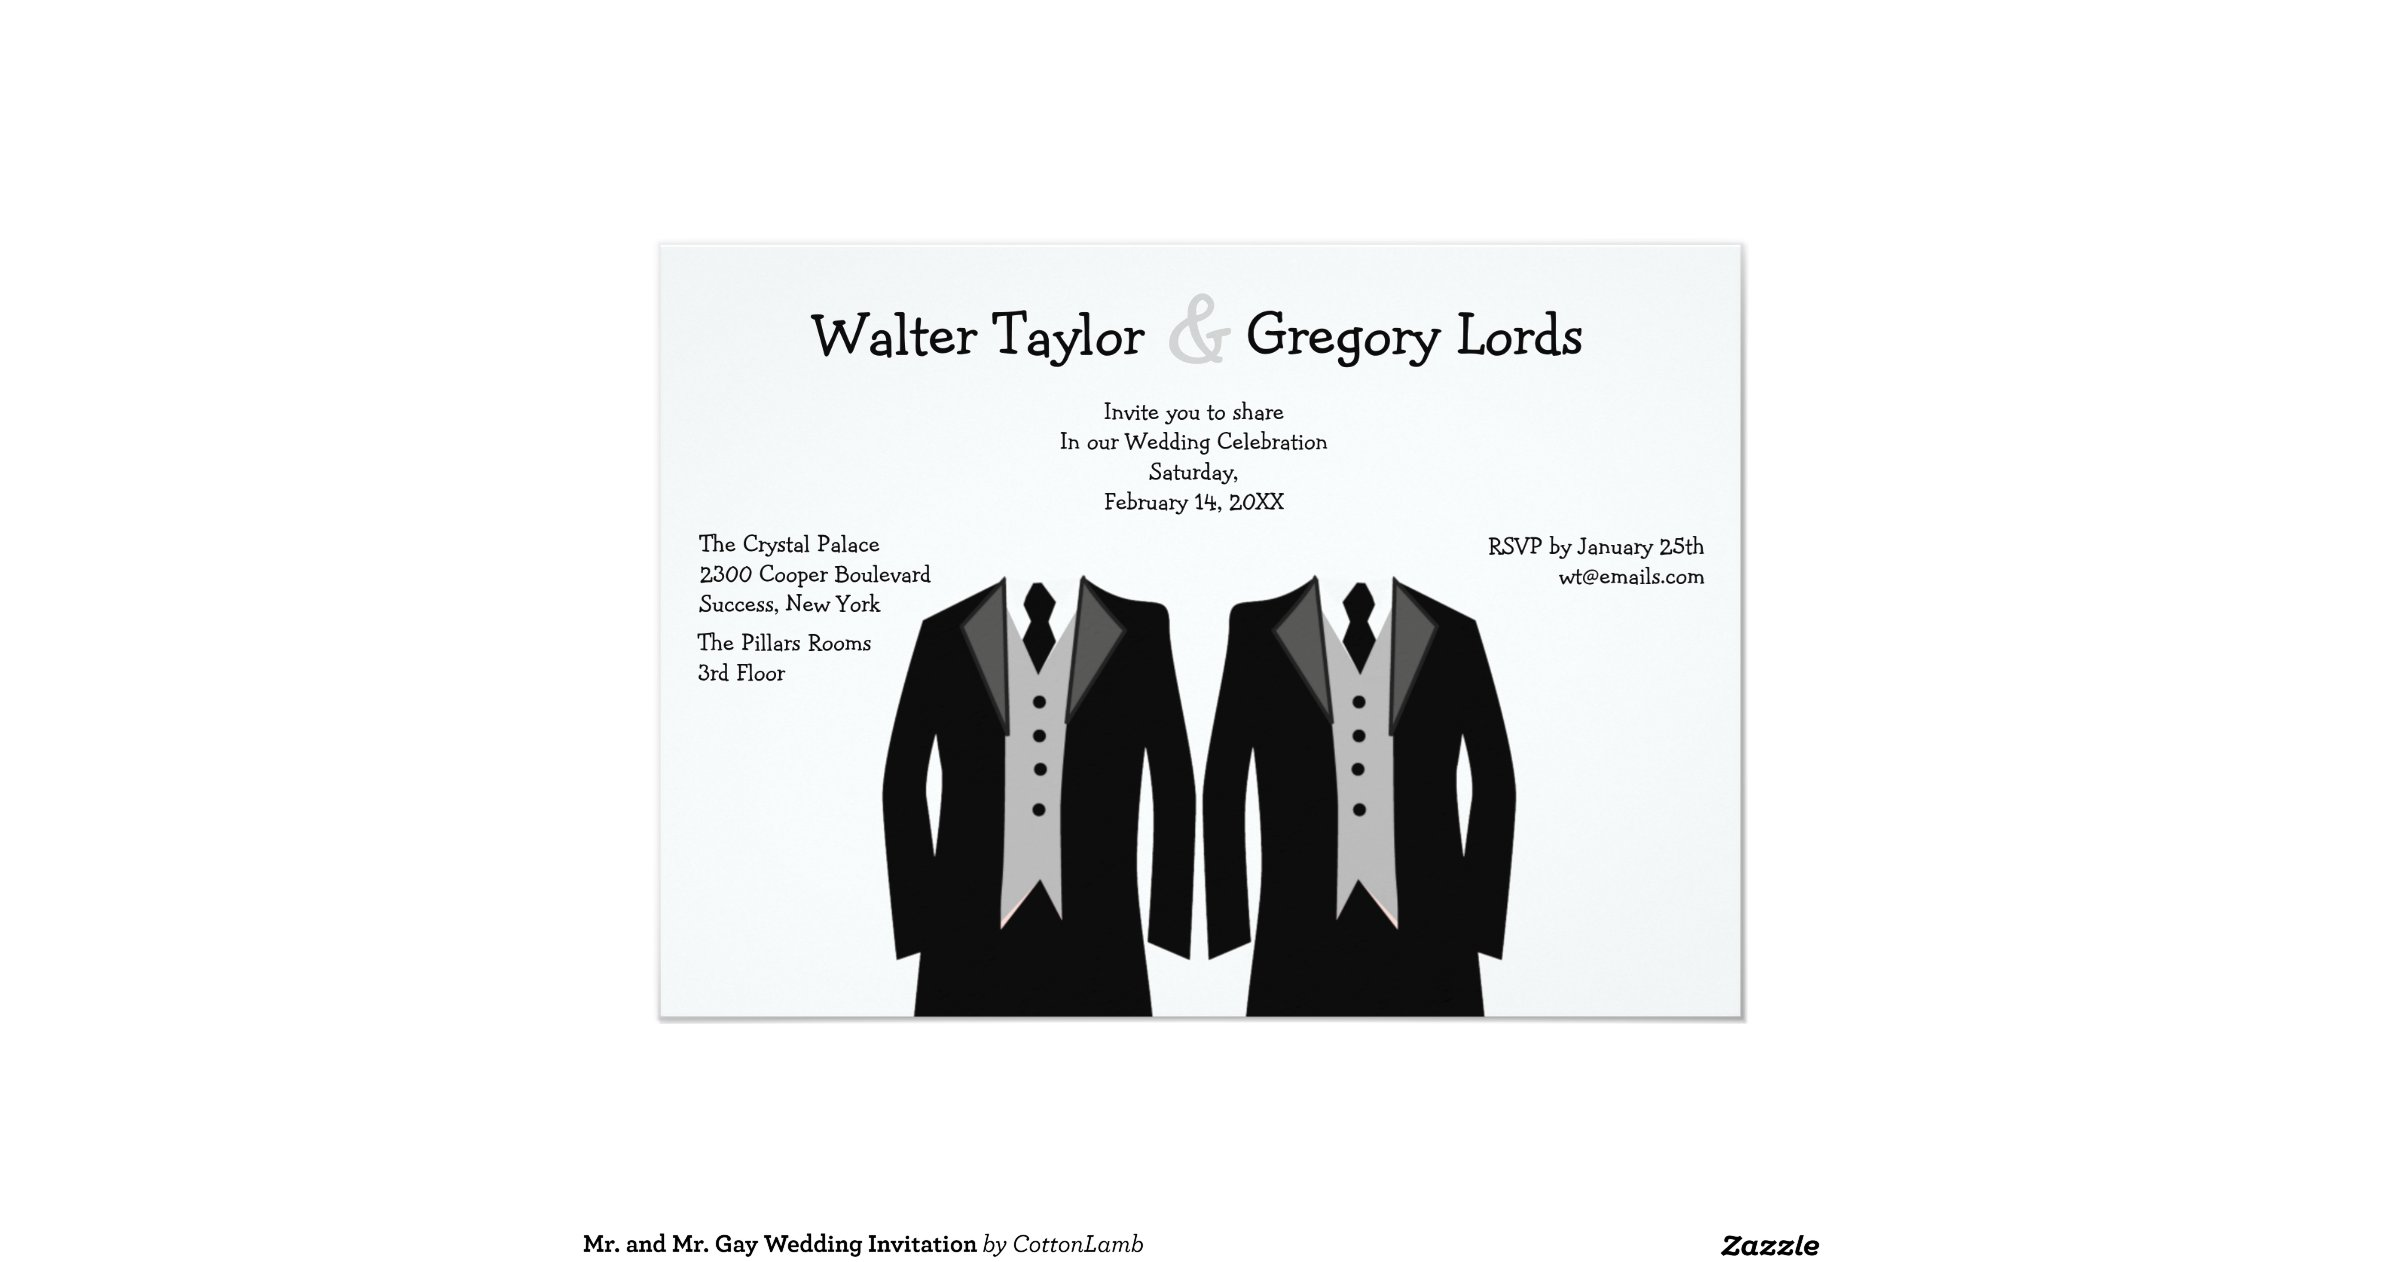 Gay Marriage Wedding Invitations: Mr_and_mr_gay_wedding_invitation